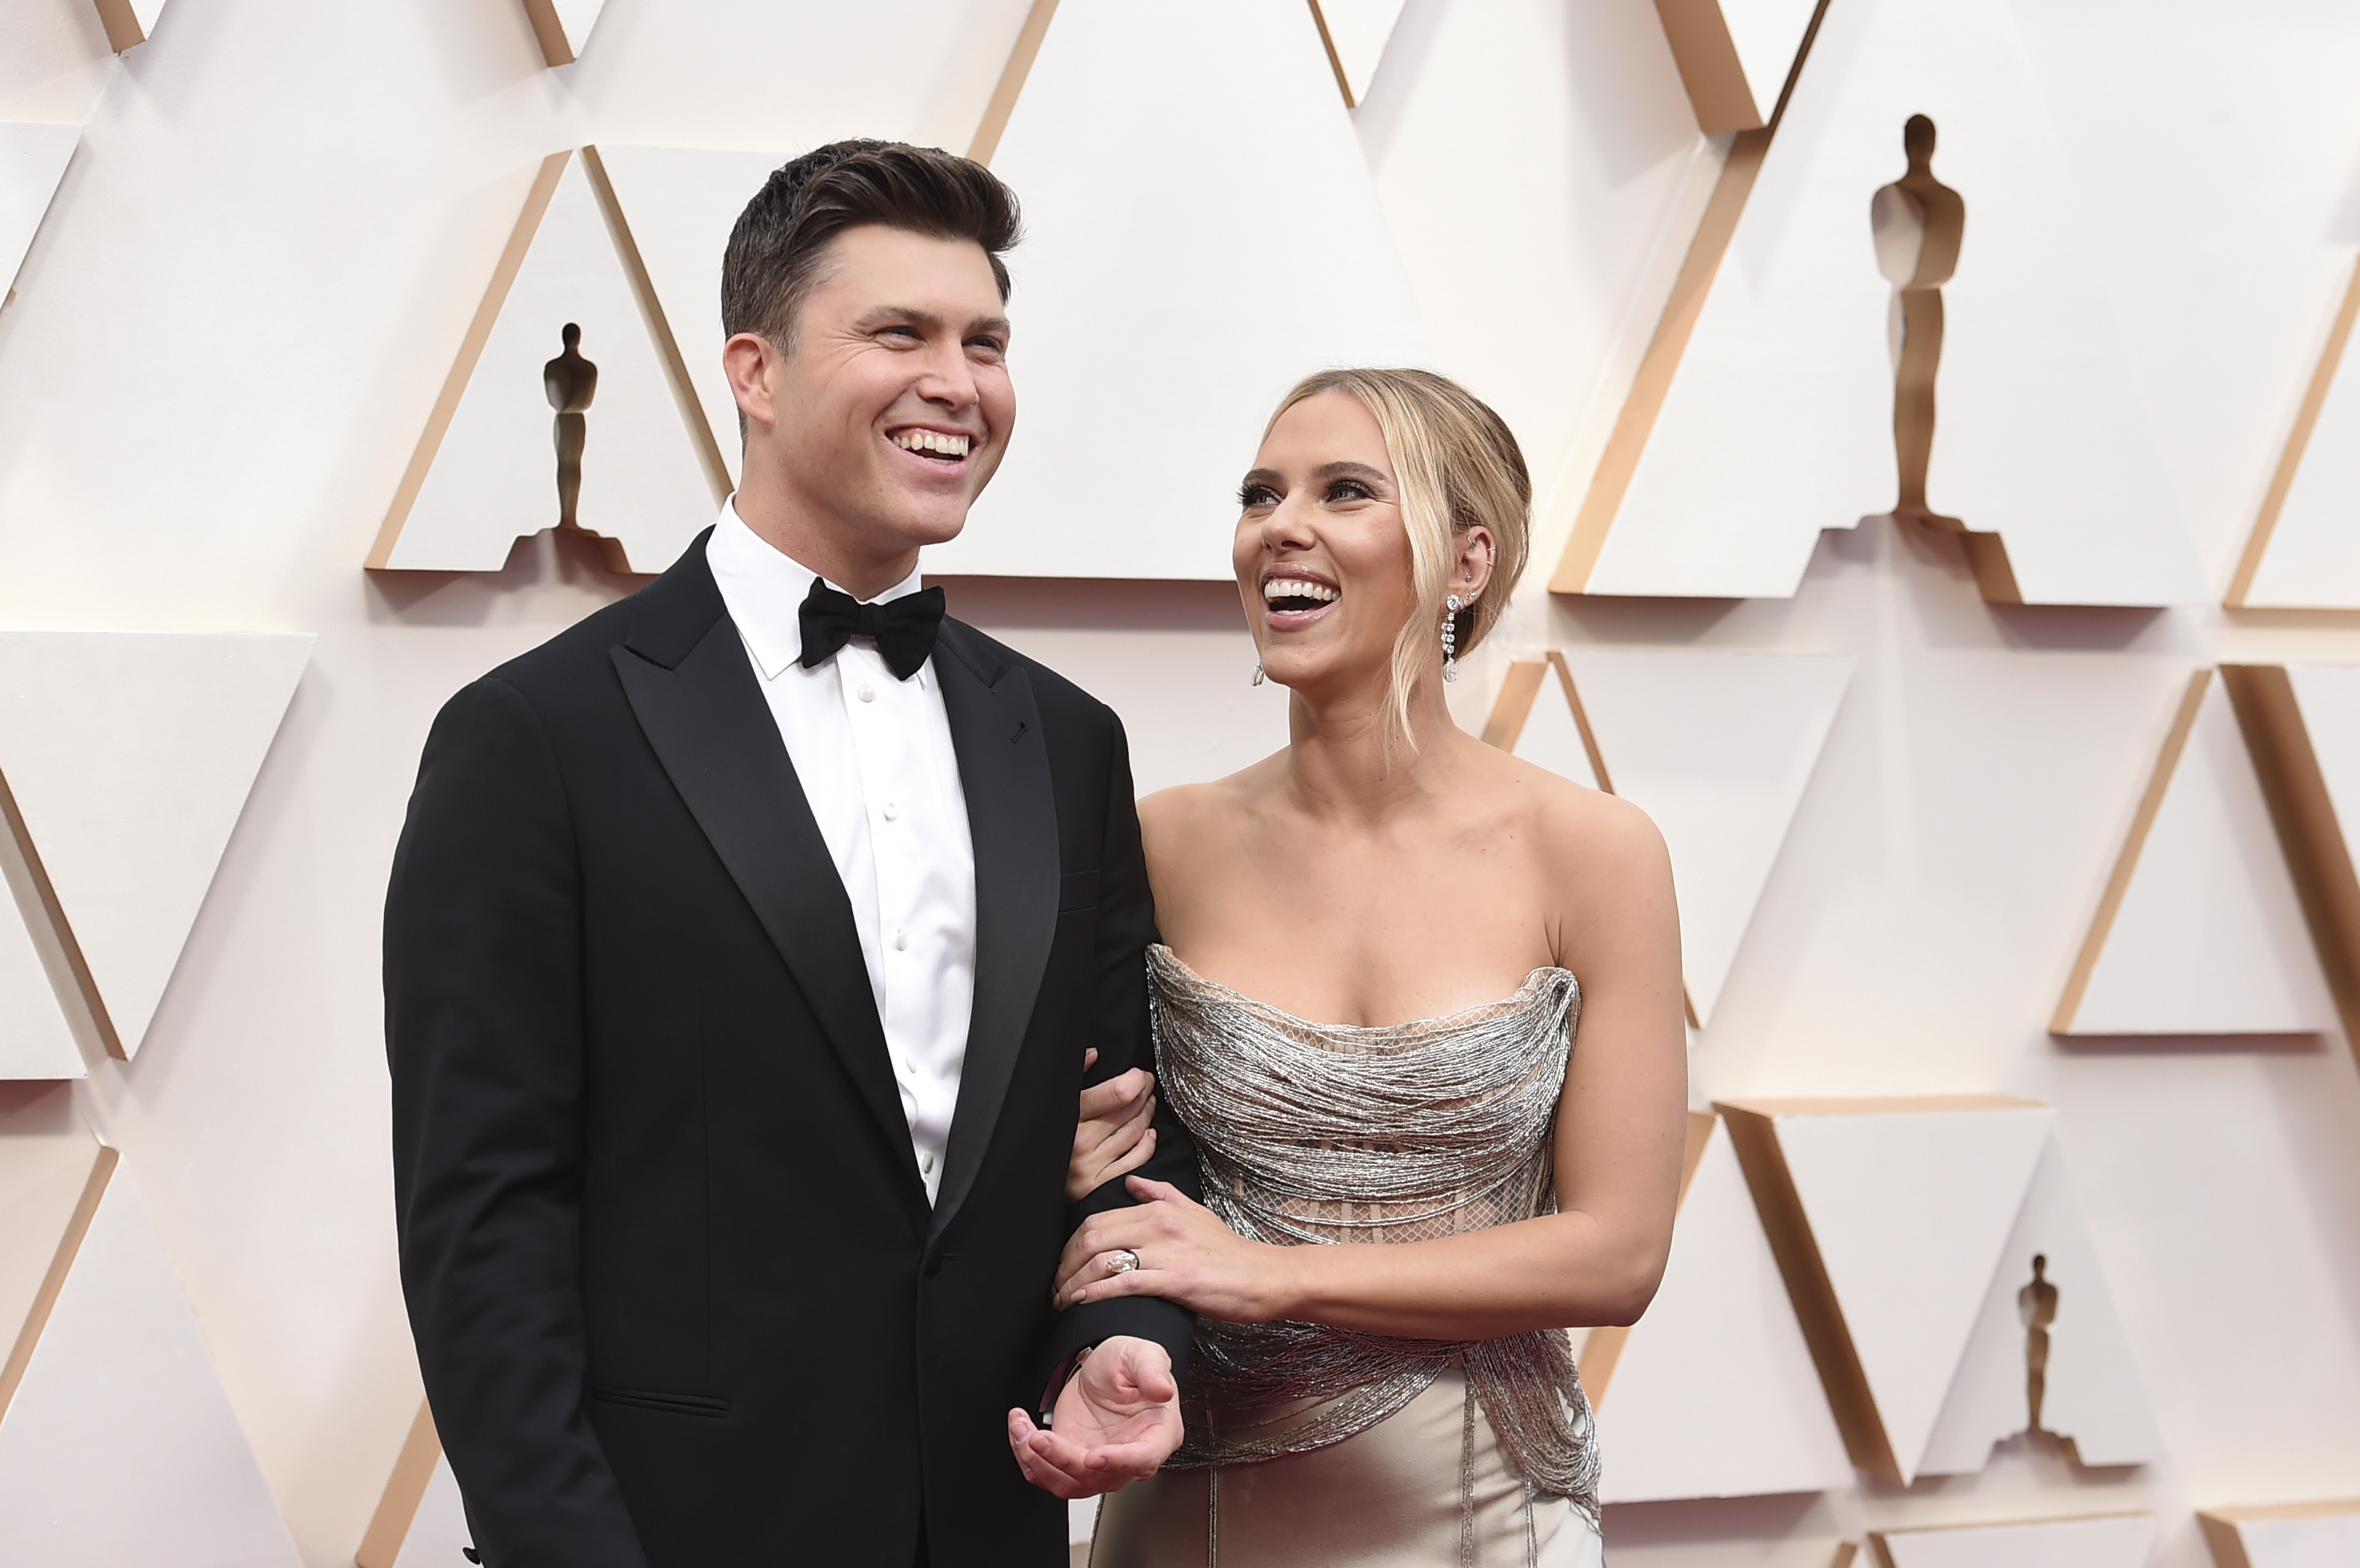 Is Colin Jost About To Leave Saturday Night Live The Boston Globe